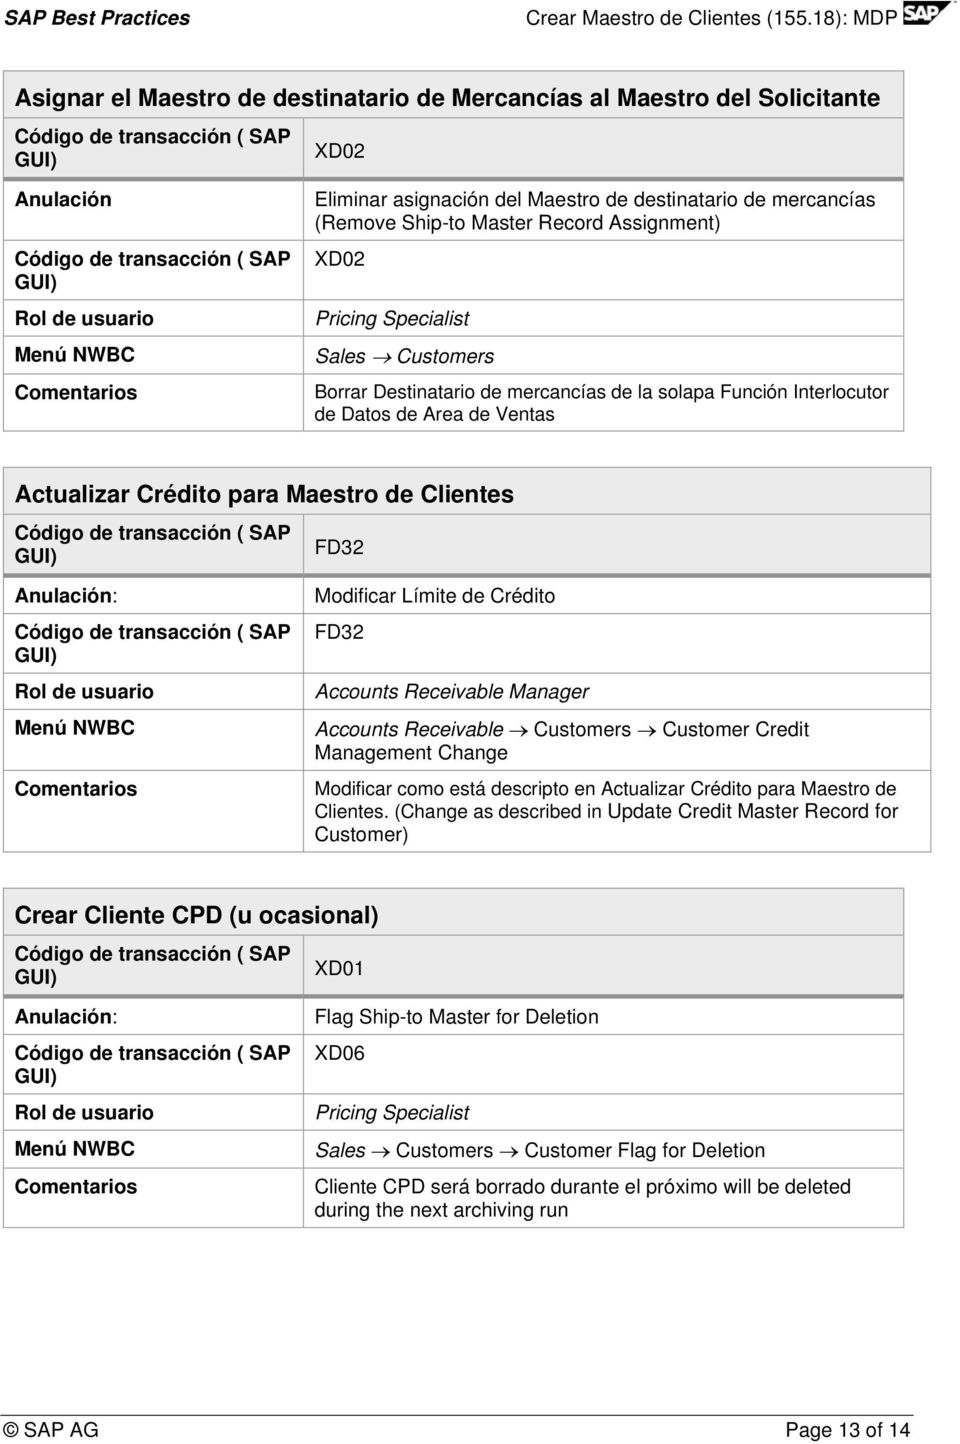 Clientes FD32 Anulación: Rol de usuario Menú NWBC Modificar Límite de Crédito FD32 Accounts Receivable Manager Accounts Receivable Customers Customer Credit Management Change Modificar como está